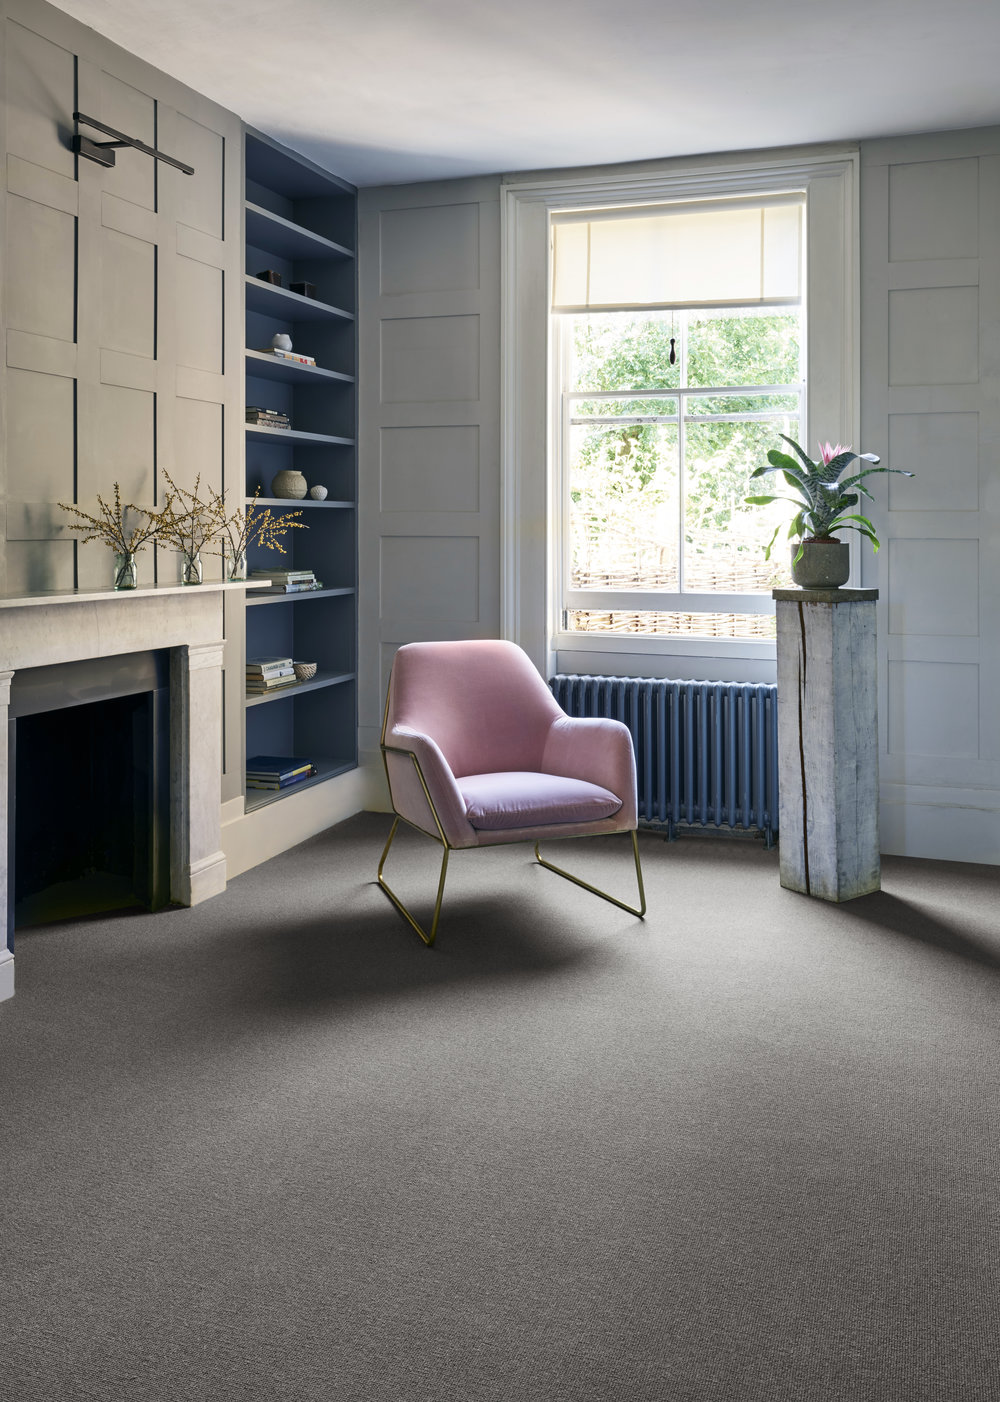 Kersaint Cobb - Pampas Nordic, Skagen priced from £28.50 per sq m